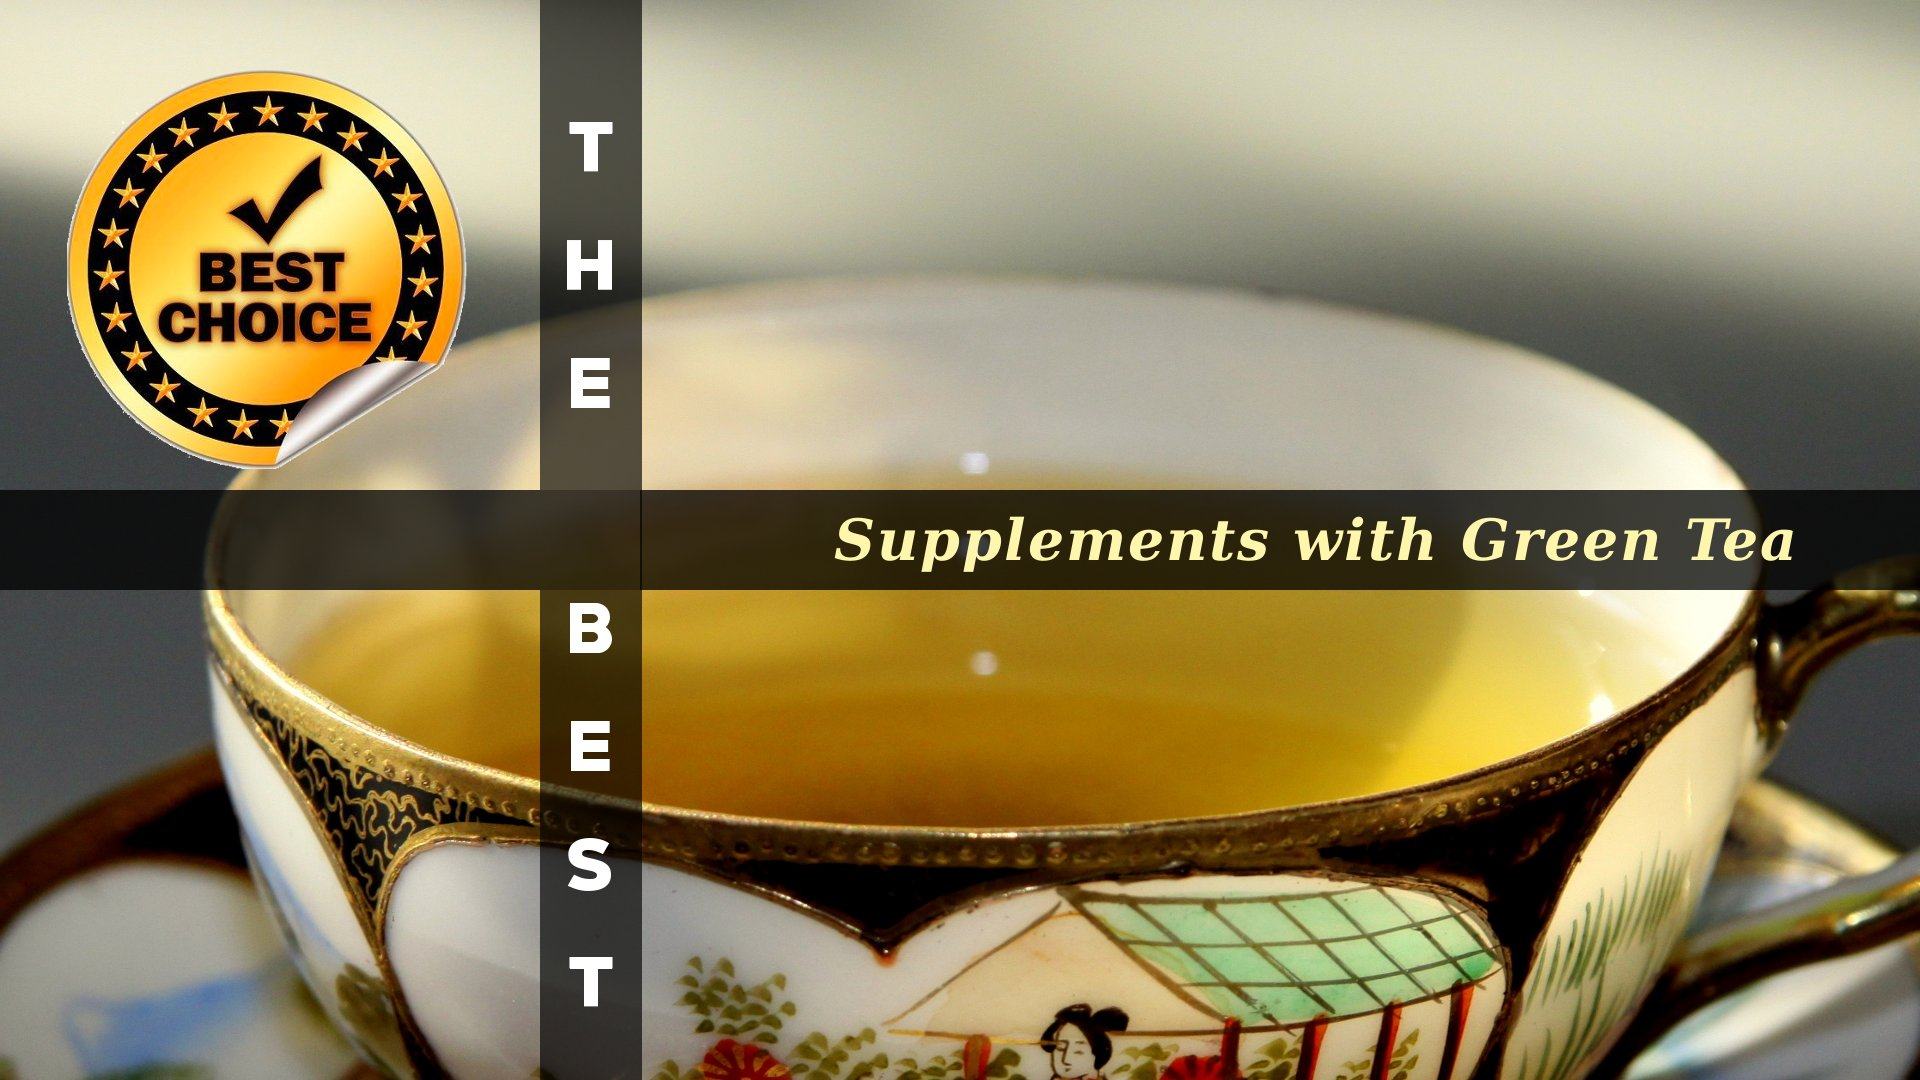 The Supplements with Green Tea